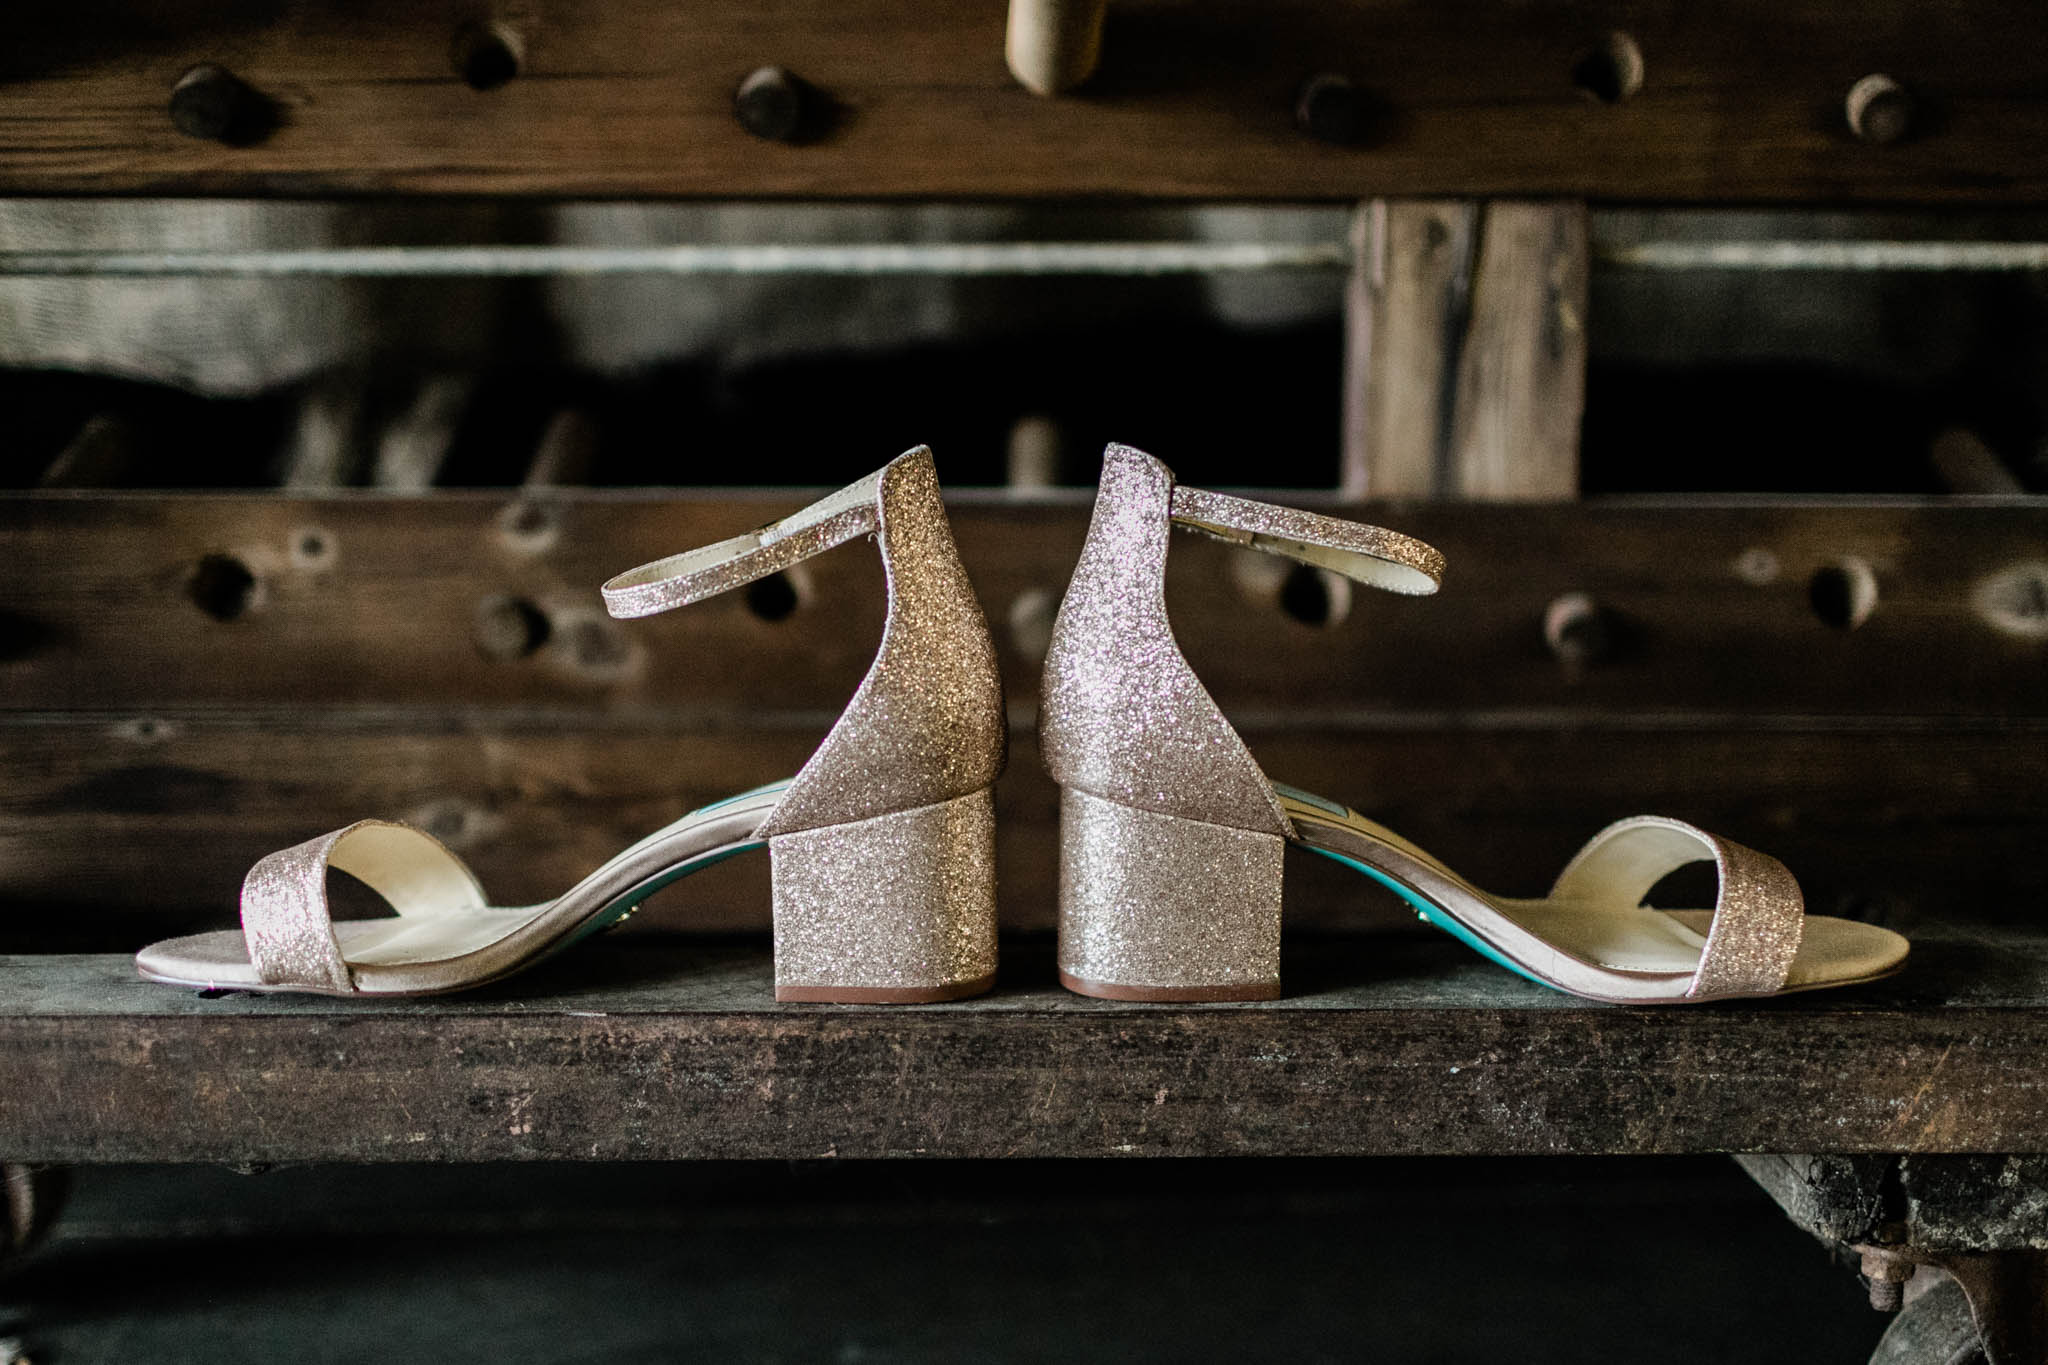 Haw River Ballroom Wedding | Durham Photographer | By G. Lin Photography | Wedding Shoes on wooden shelf